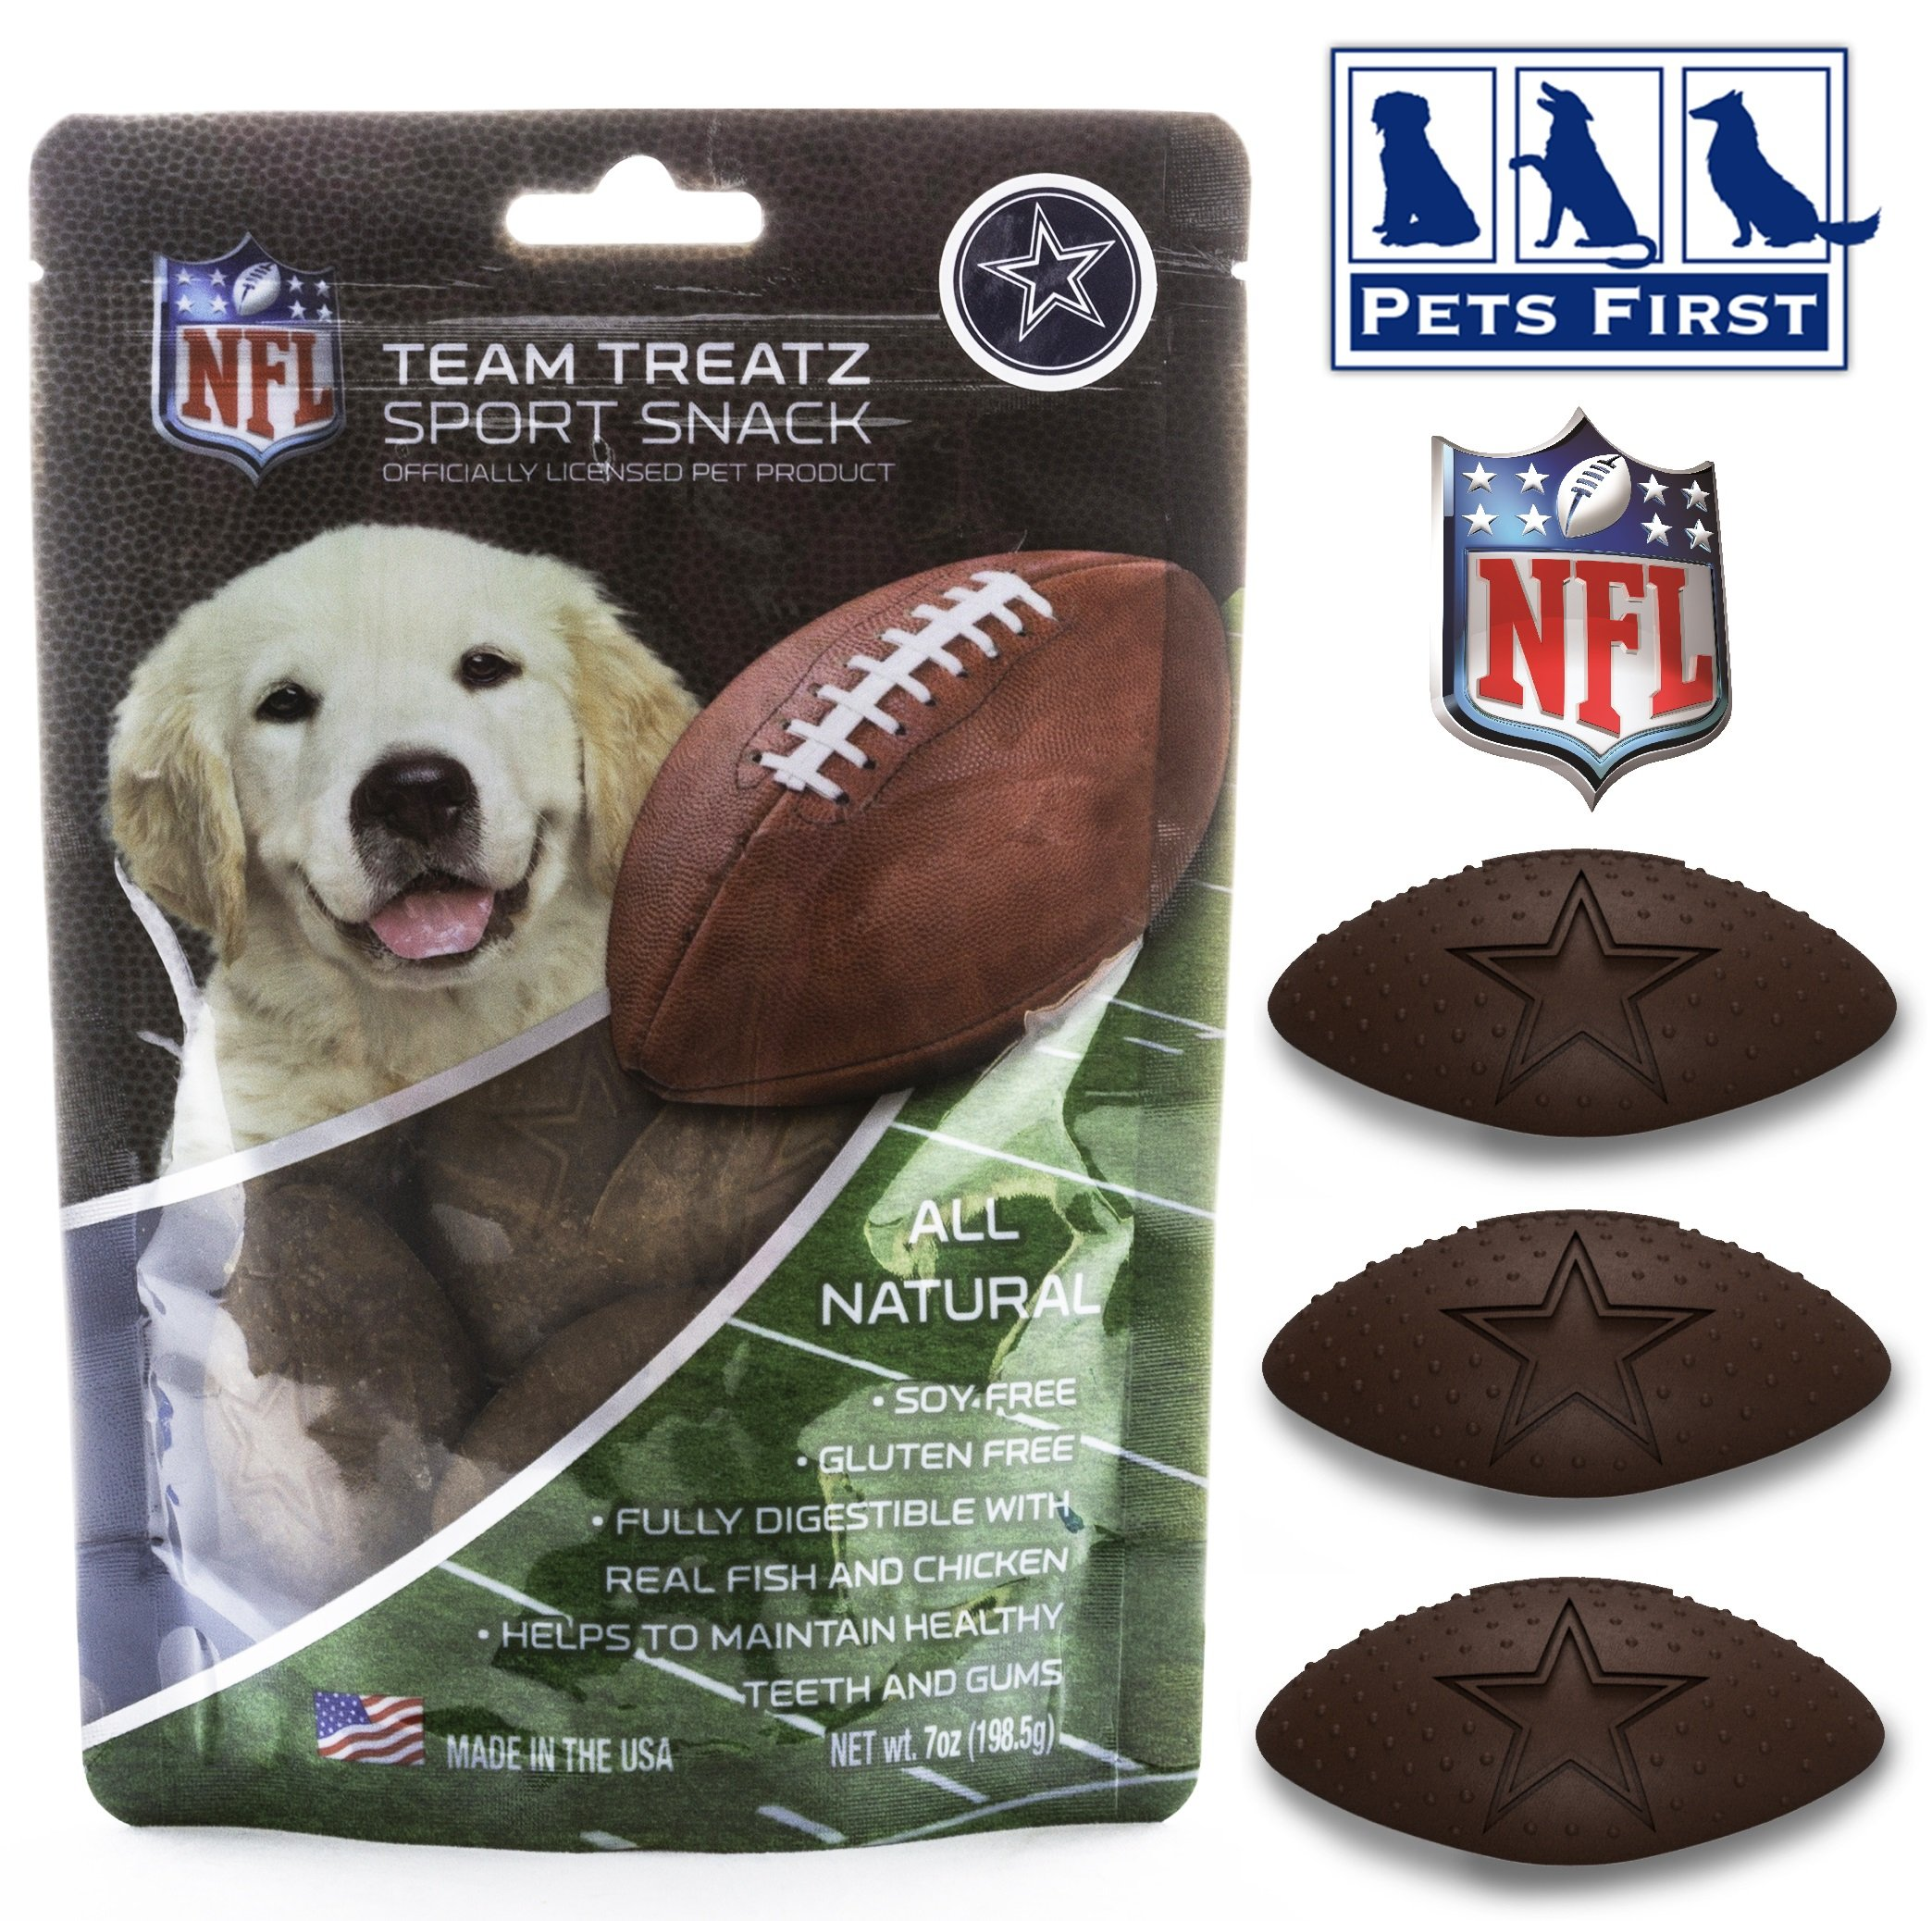 Pets First NFL DALLAS COWBOYS DOG FOOD Snack Treat Bone-Free. Dog Training Cookies Tasty Biscuits Dog Rewards. Provides Healthy Dog Teeth & Gum, Soy-Free, Gluten-Free.